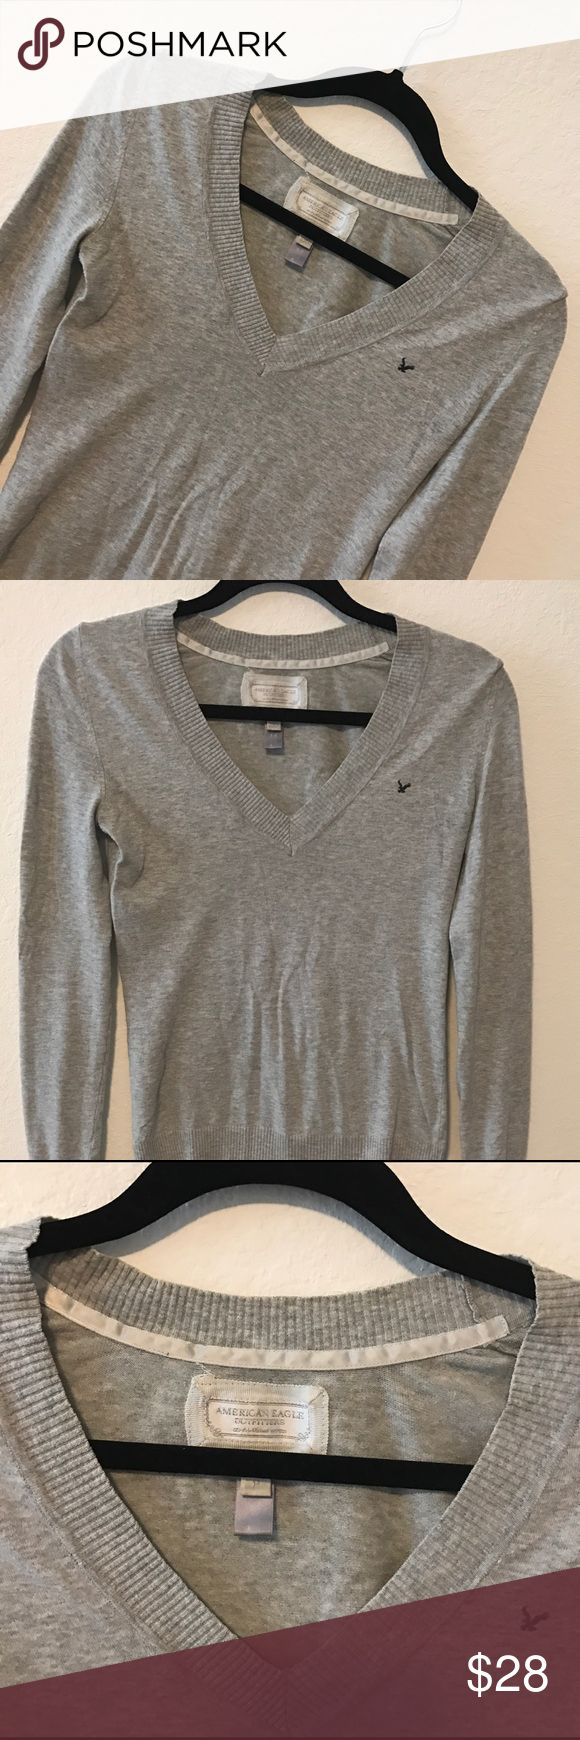 AMERICAN EAGLE SWEATER American Eagle gray sweater.                                 💗Condition: EUC, No flaws 💗Smoke free home 💗No trades, No returns 💗No modeling  💗Shipping next day 💗OPEN TO reasonable OFFERS  💗BUNDLE and save more 💗All transactions video recorded to ensure quality. American Eagle Outfitters Sweaters V-Necks